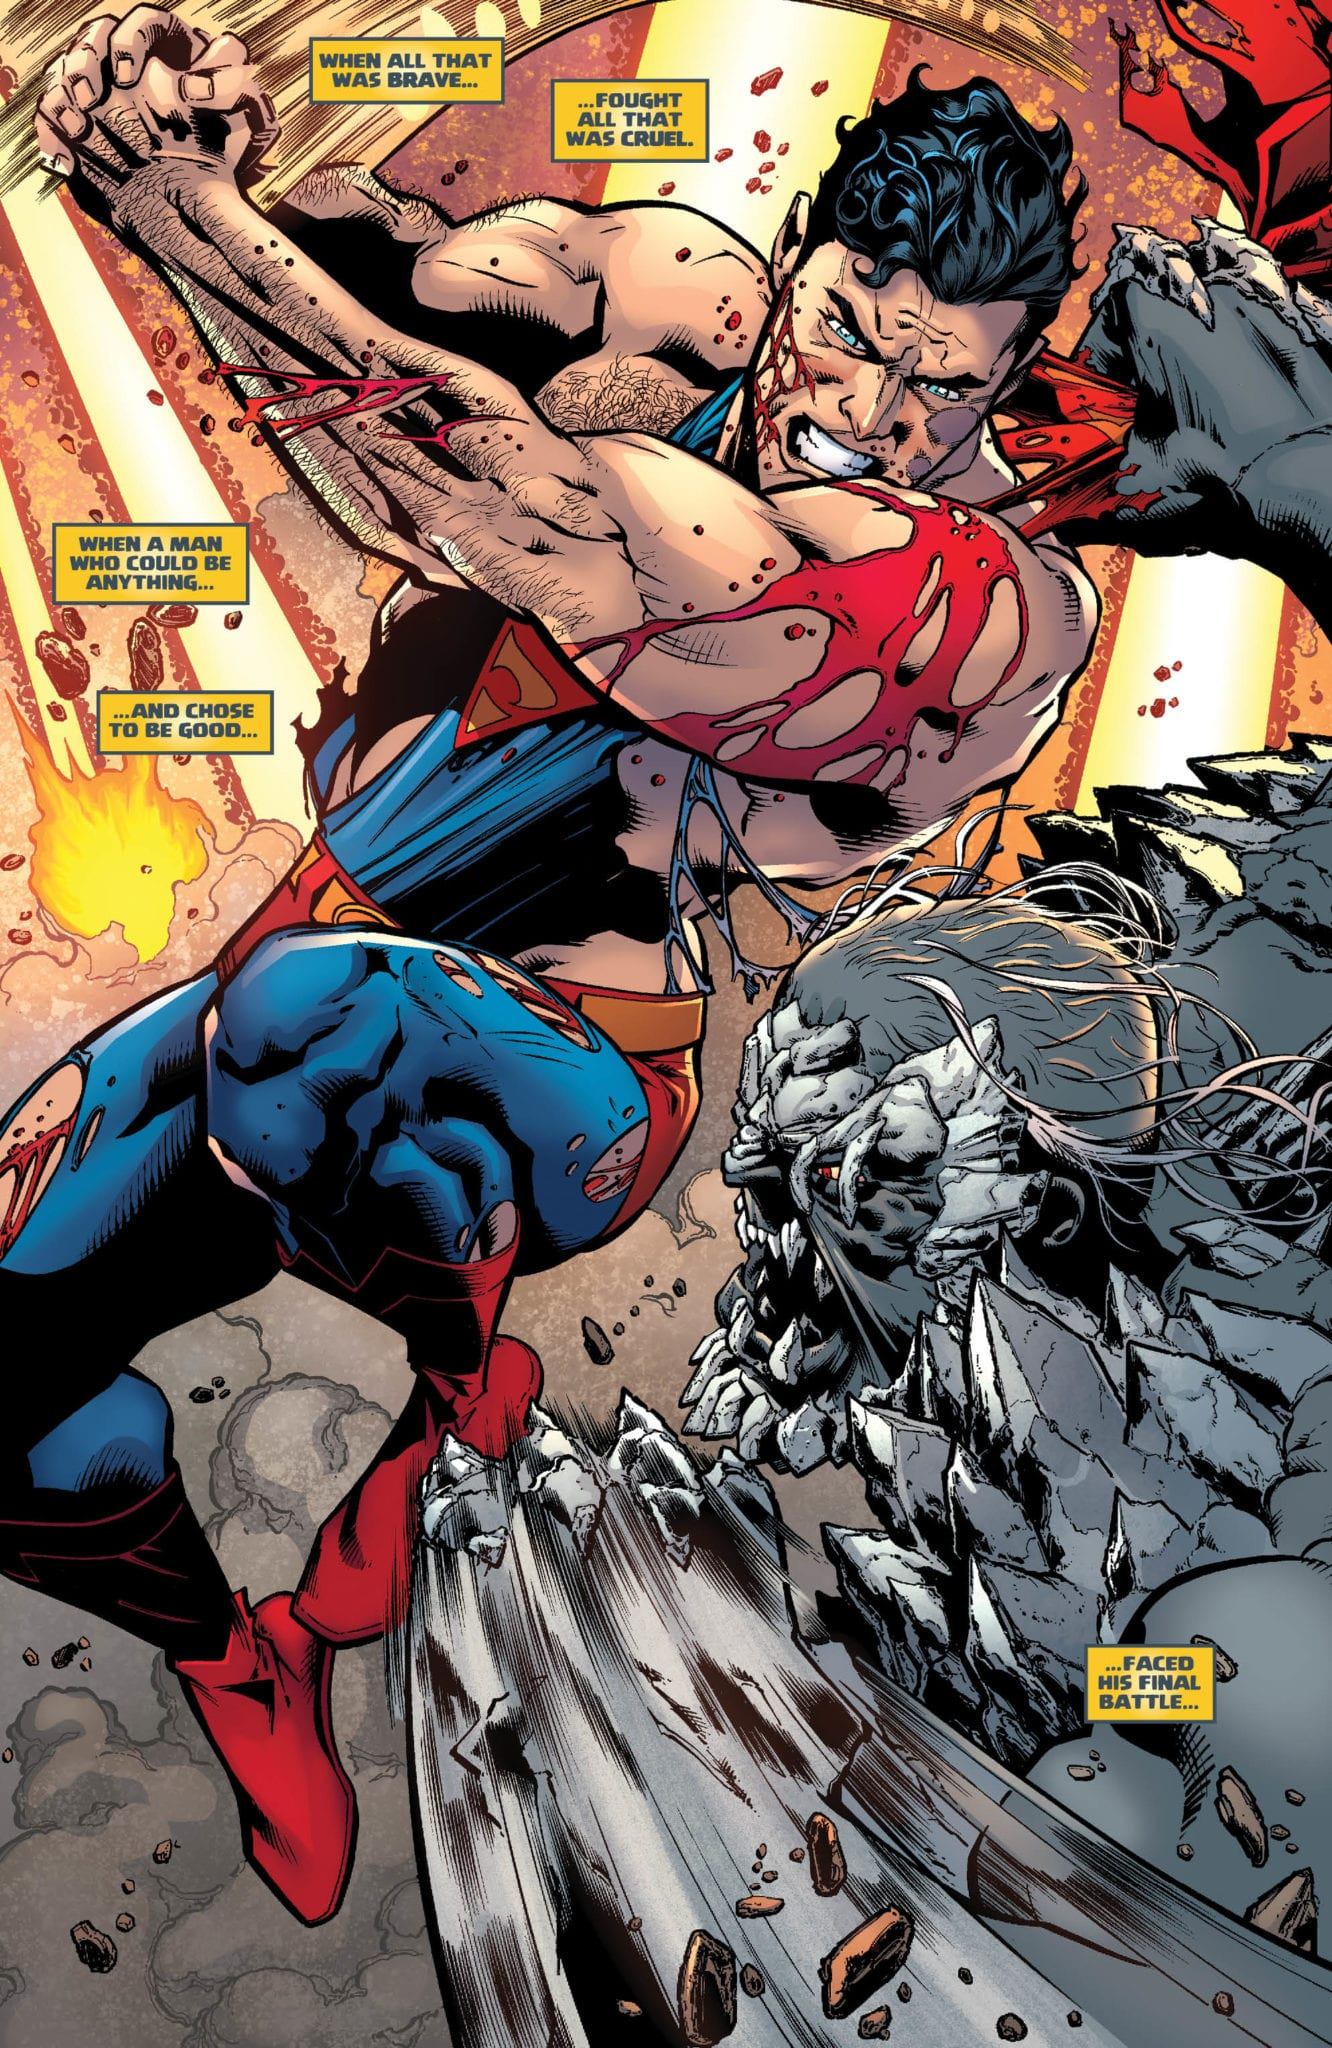 Superman fights against Doomsday in the Dark Multiverse